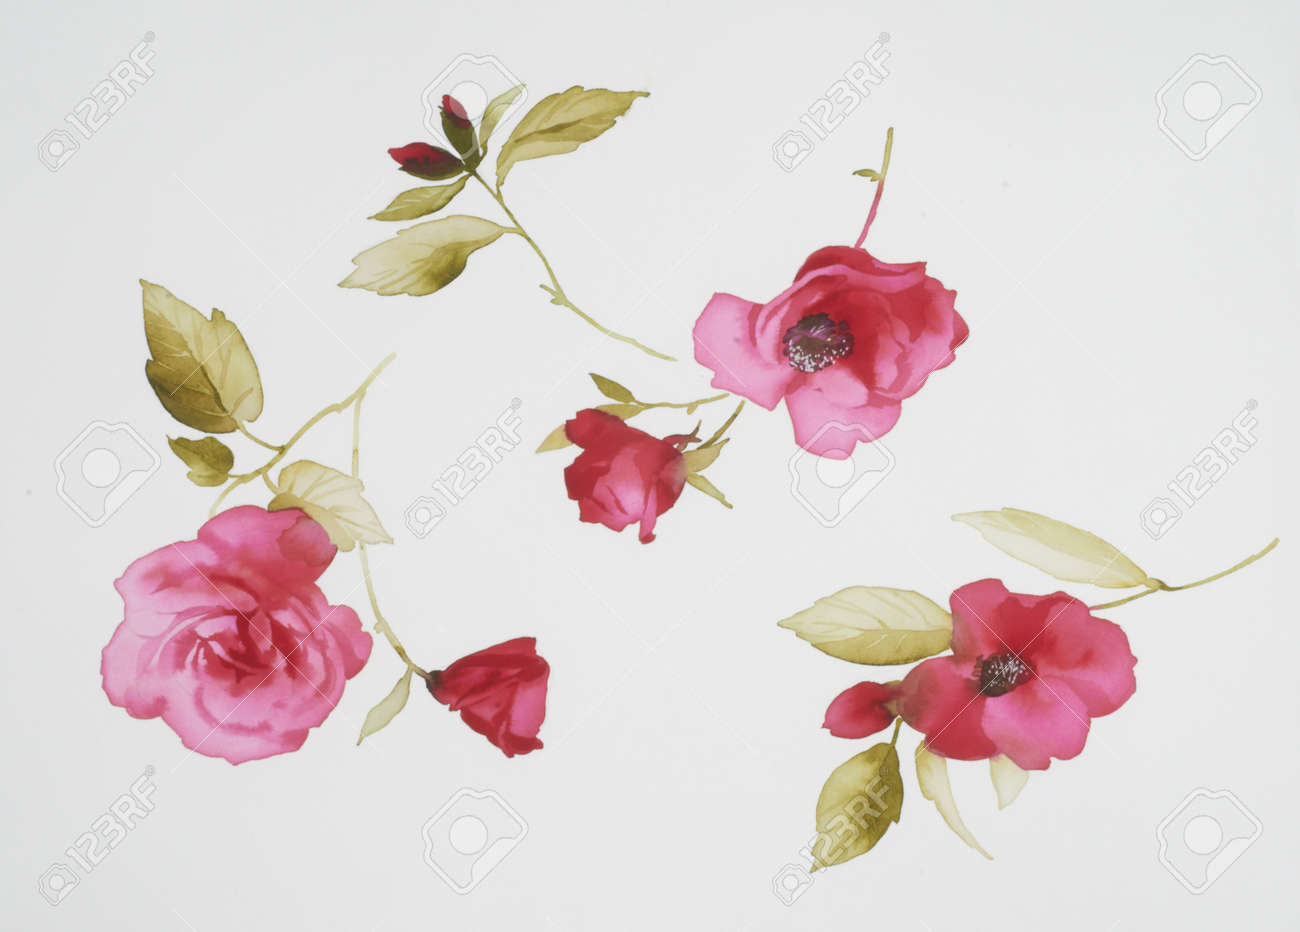 Color illustration of flowers in watercolor paintings Stock Illustration - 12566745